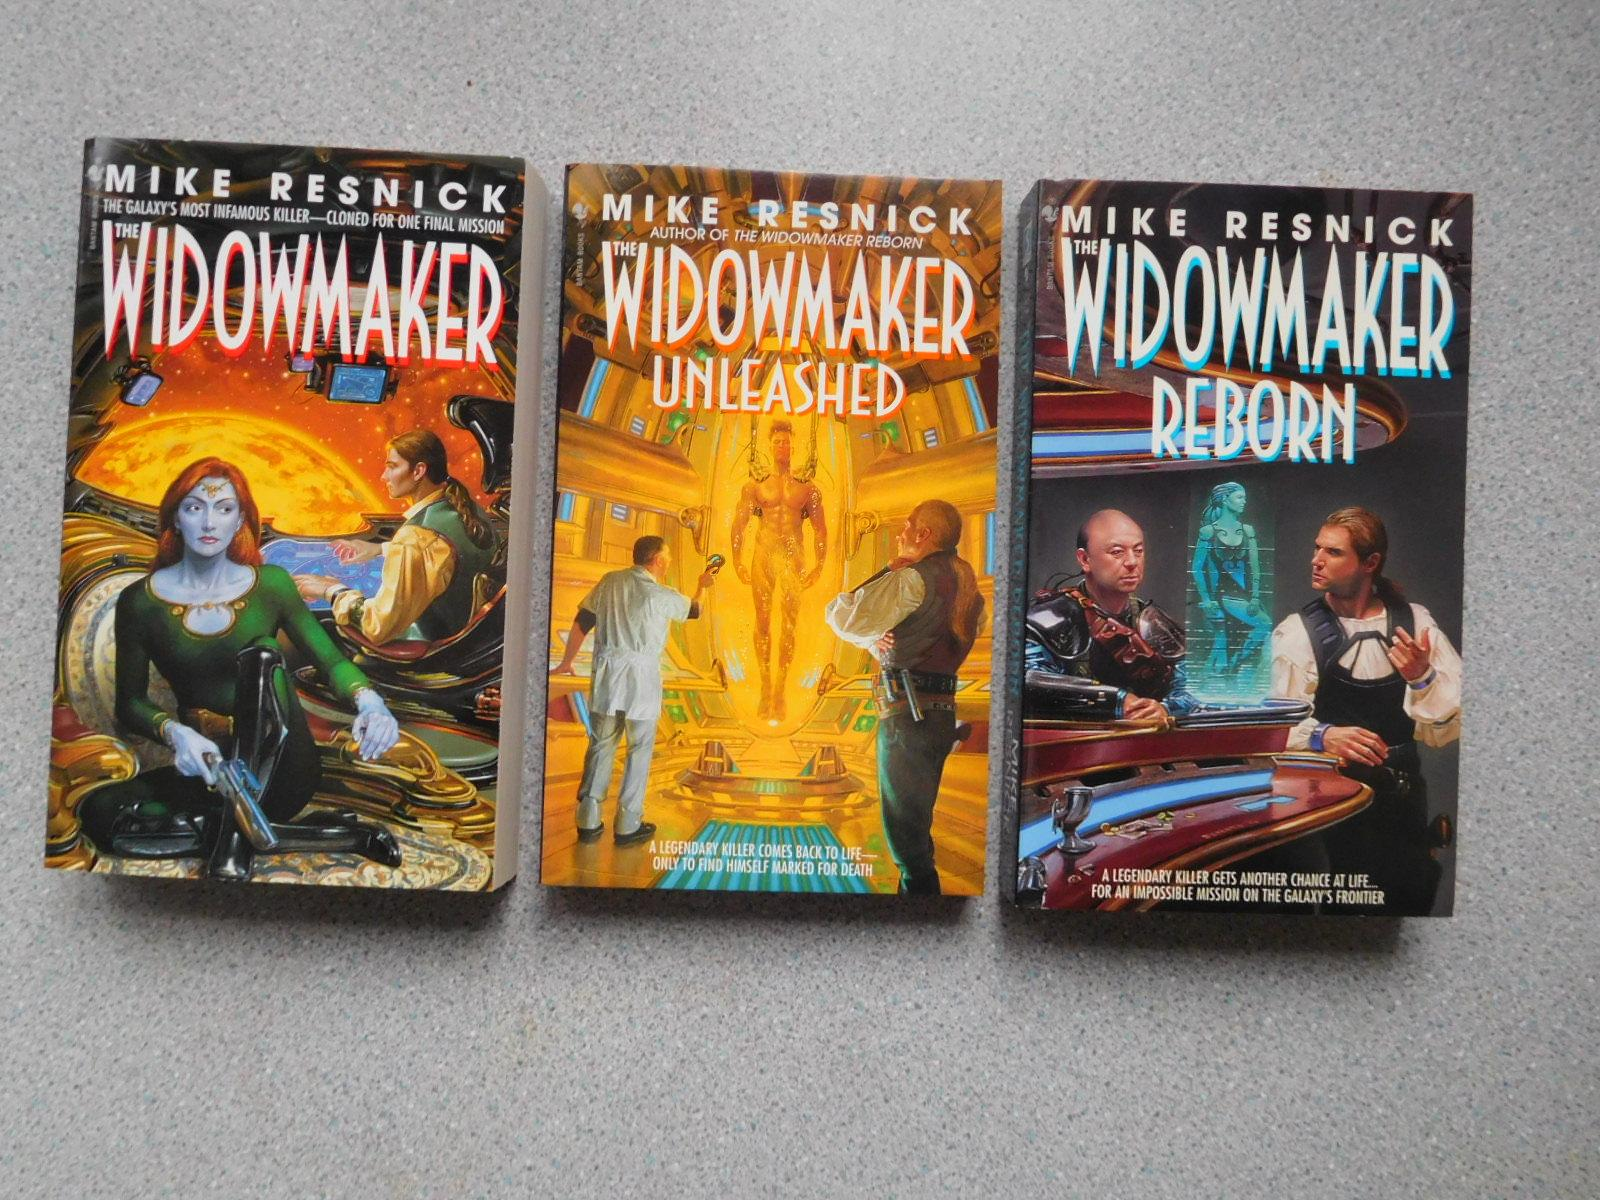 THE WIDOWMAKER & THE WIDOWMAKER REBORN & THE WIDOWMAKER UNLEASHED (Three Pristine First Editions) Resnick, Mike